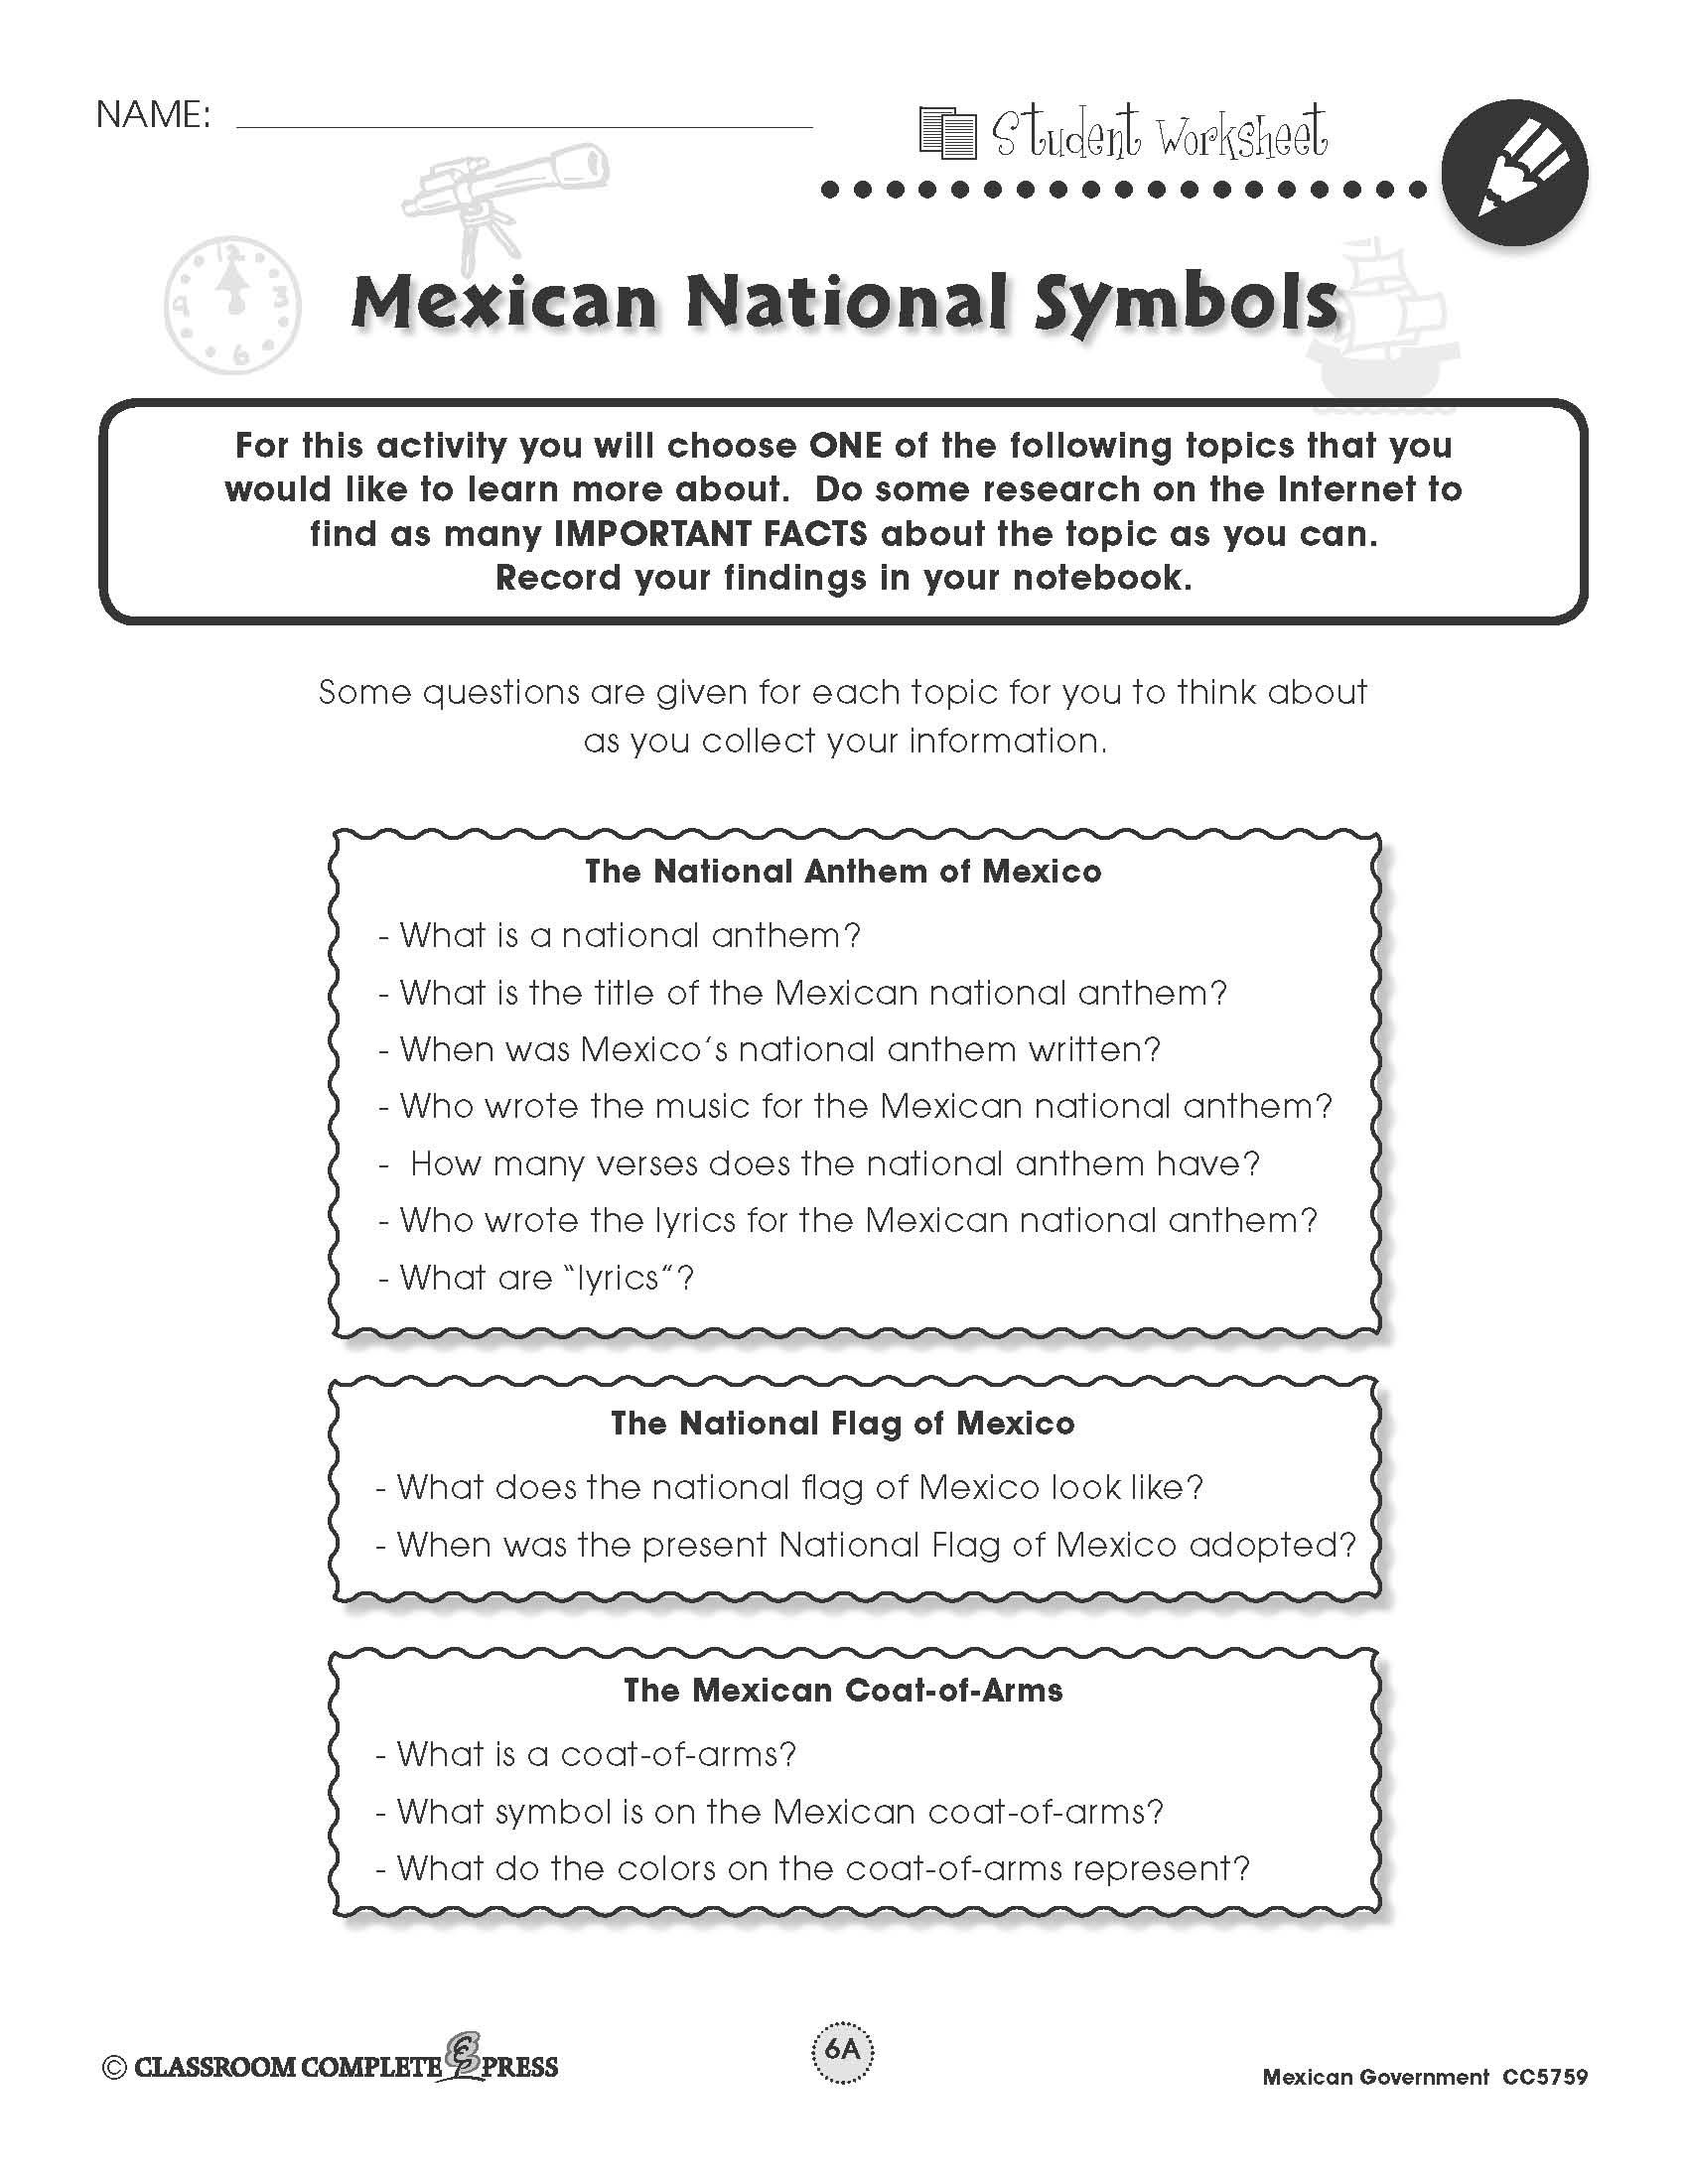 Learn all about mexicos national symbols in this free activity learn all about mexicos national symbols in this free activity from ccp interactive a division biocorpaavc Choice Image